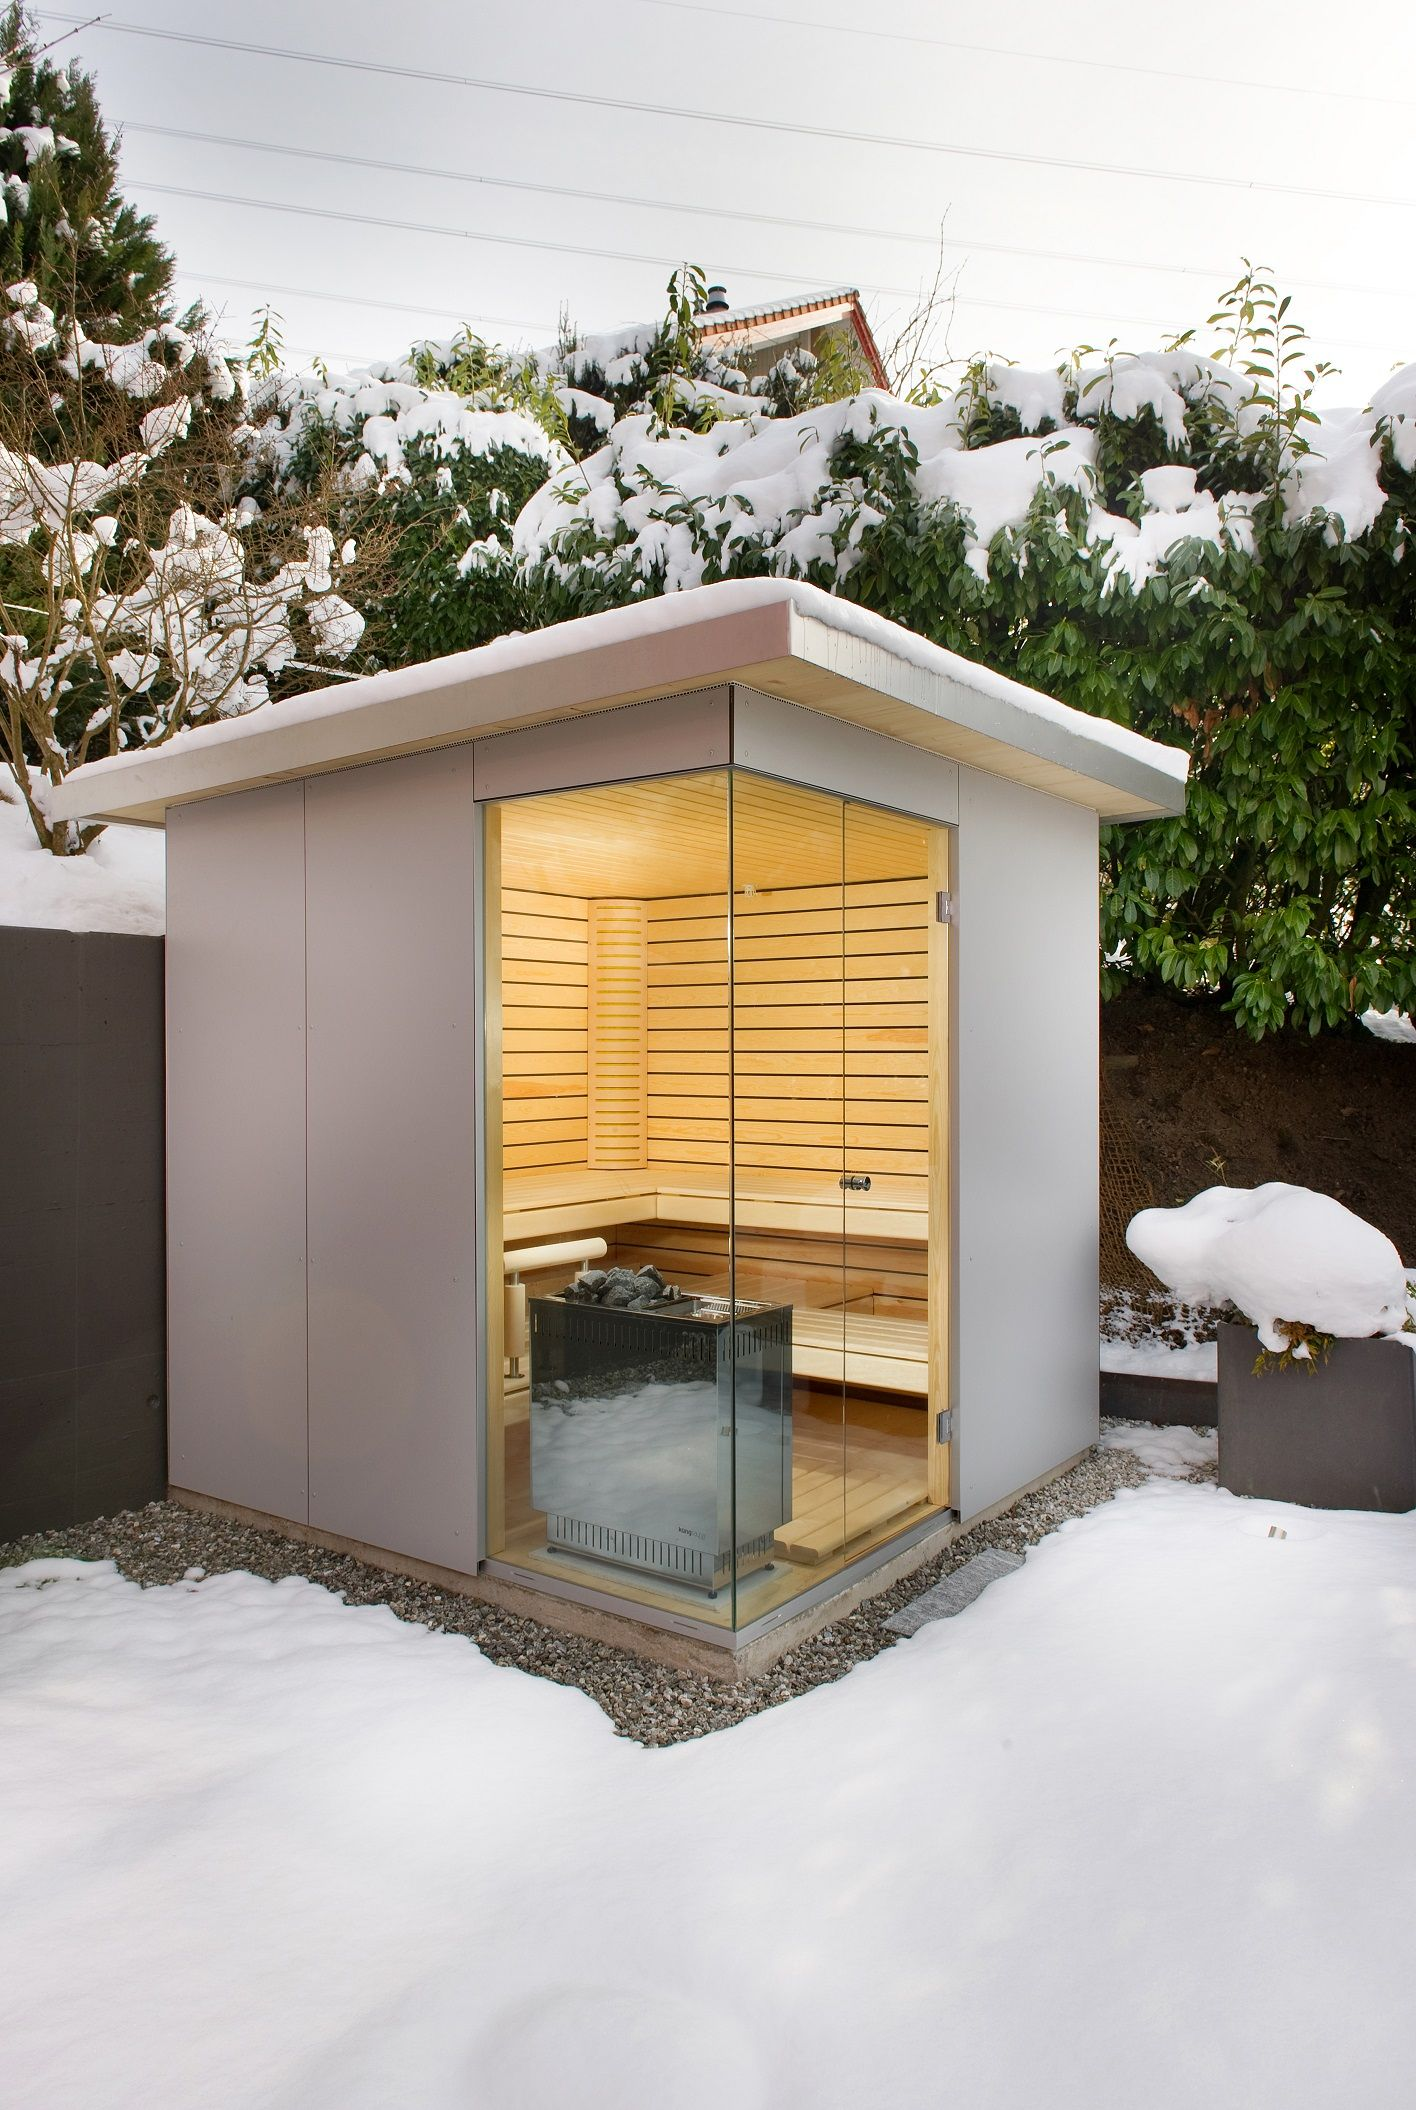 Sauna In The Home 17 Outstanding Ideas That Everyone Need: Architecture And Landscape